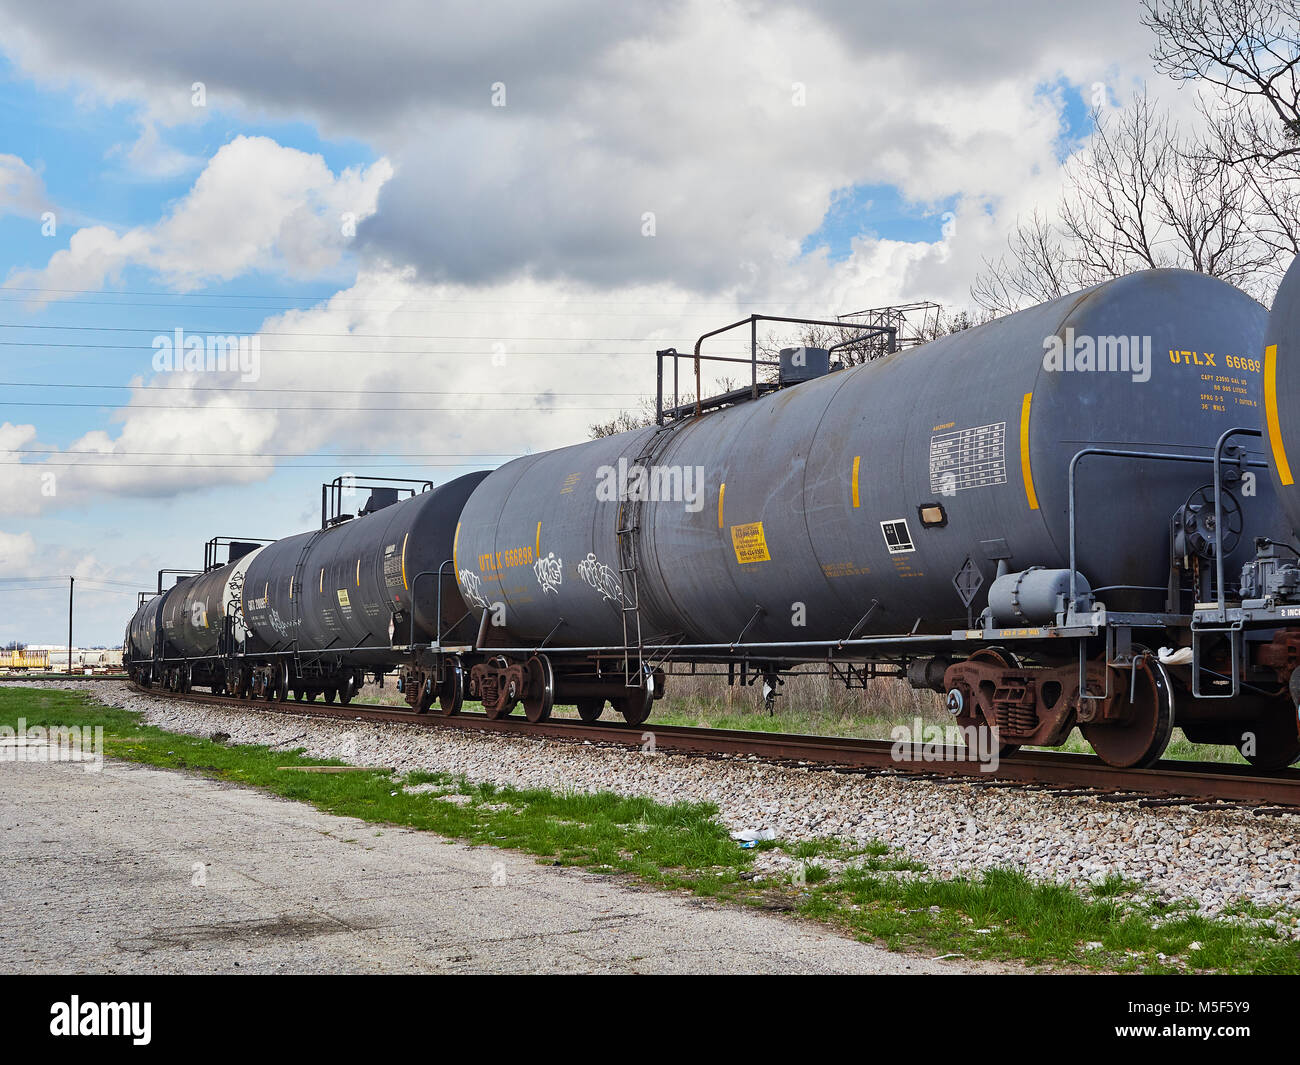 Railroad or train tank cars waiting on a siding in the Montgomery Alabama, USA, CSX switching yard. - Stock Image